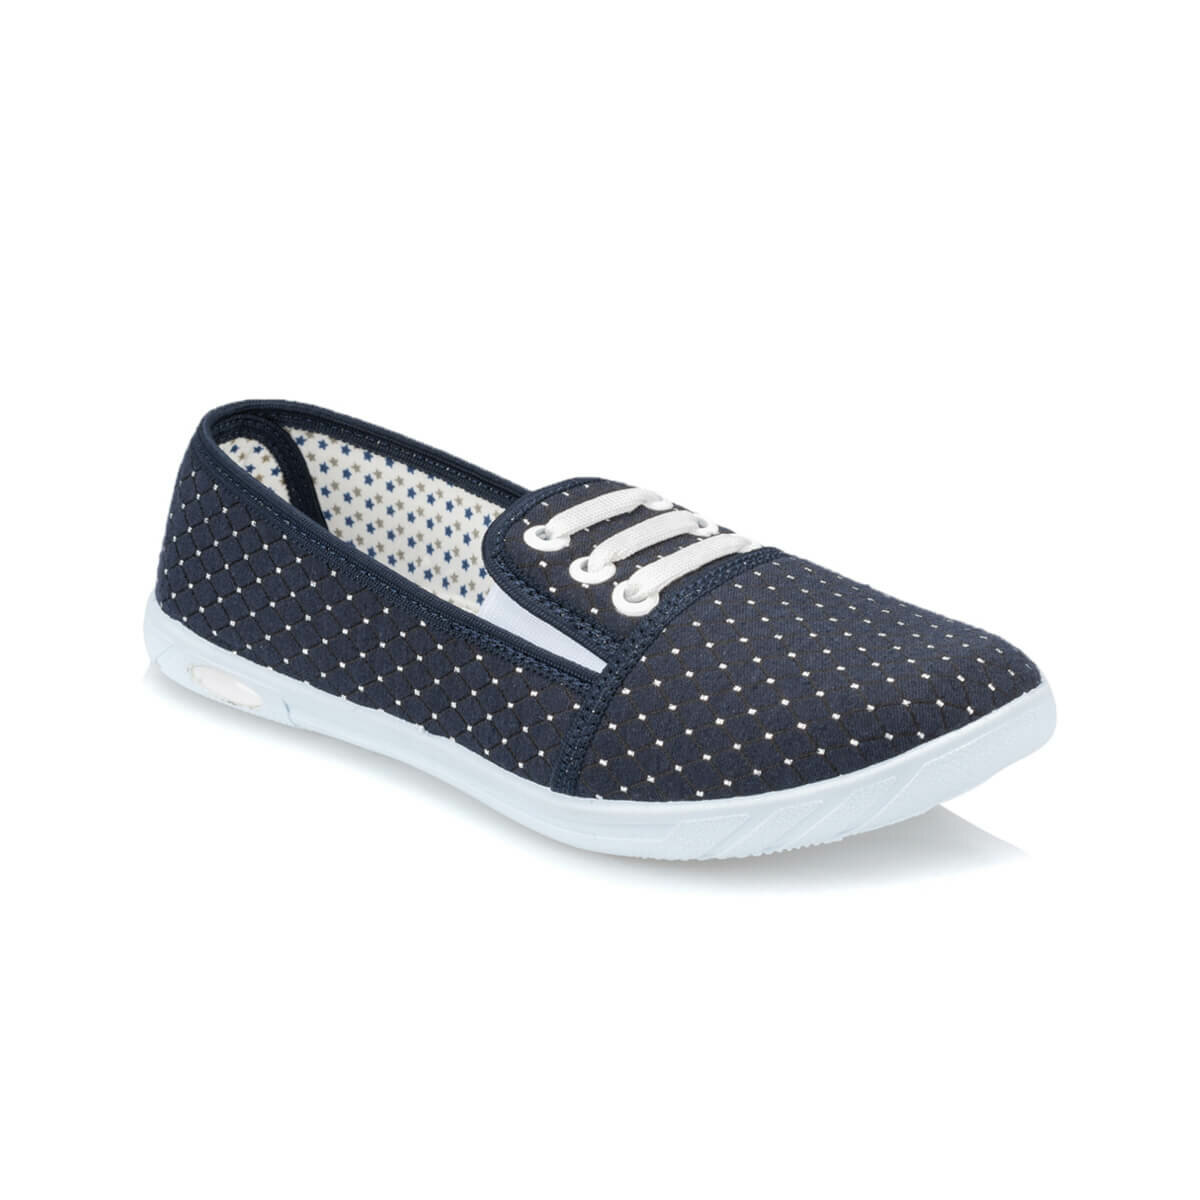 FLO 91. 354989.Z Navy Blue Women 'S Slip On Shoes Polaris